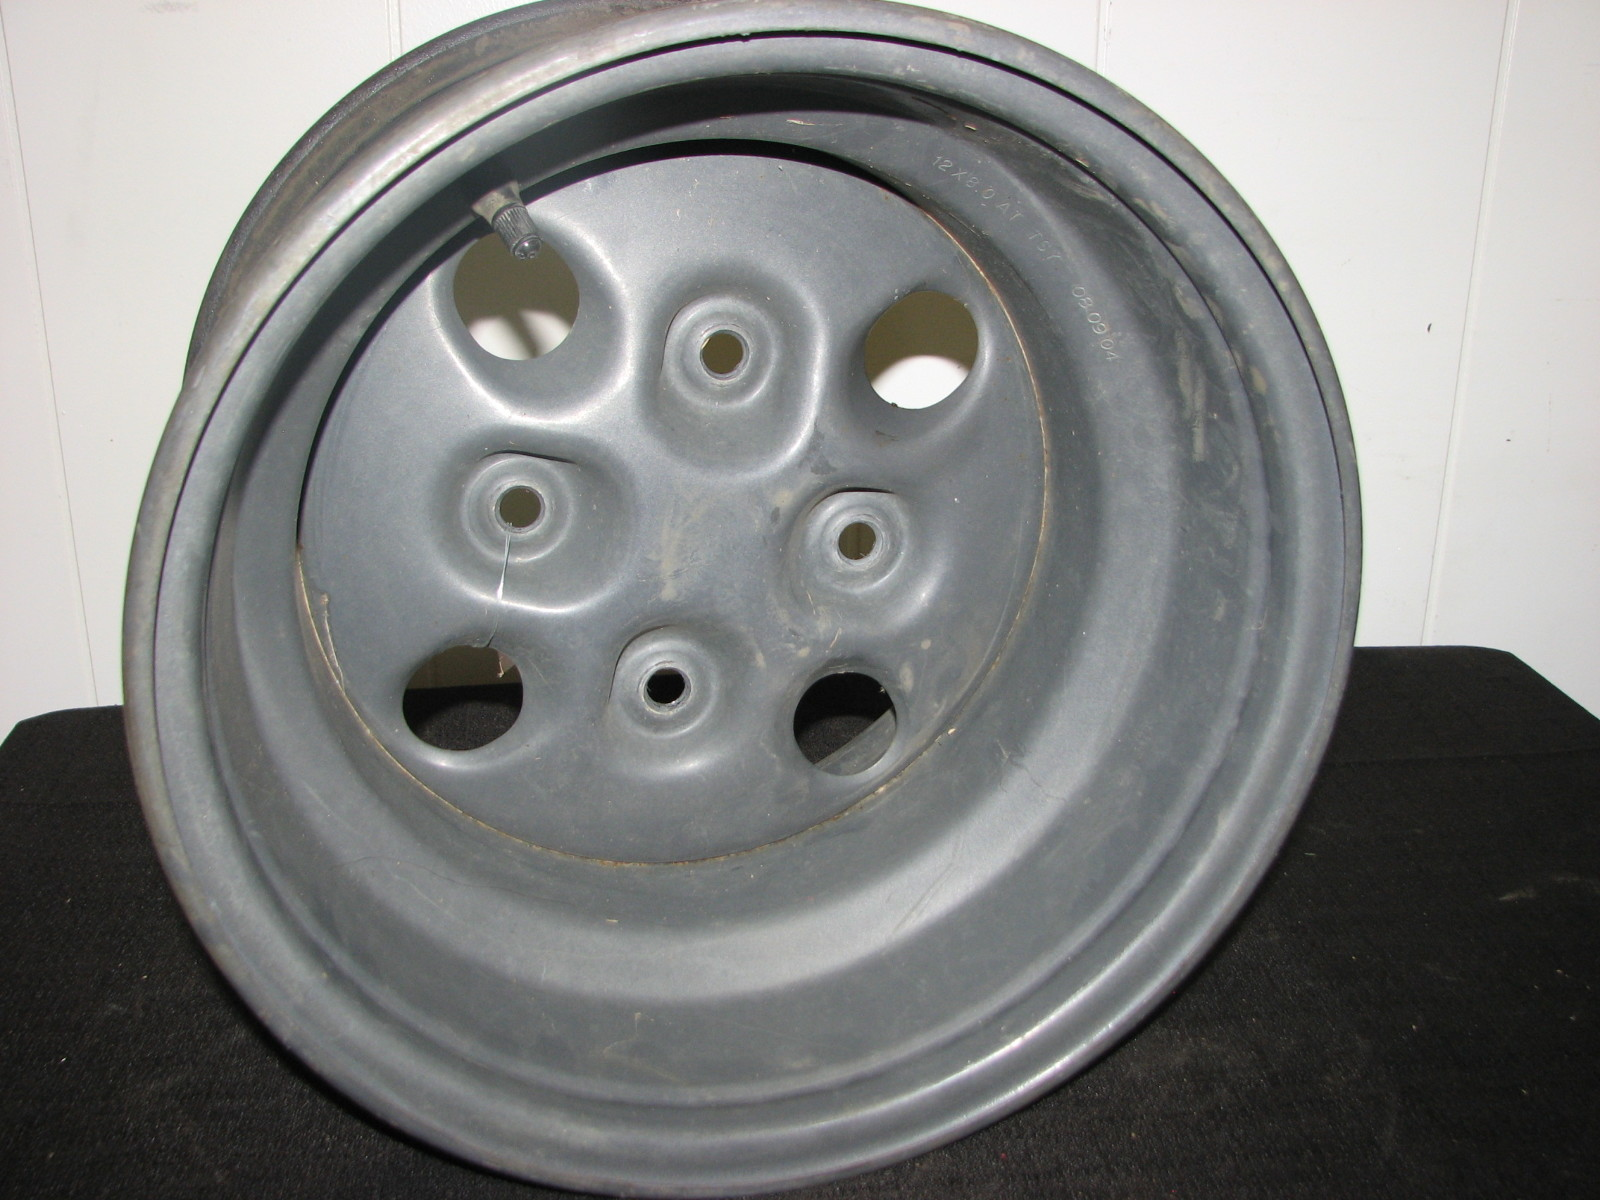 Atv Rims Wheel Covers : Arctic cat atv rear wheel rim